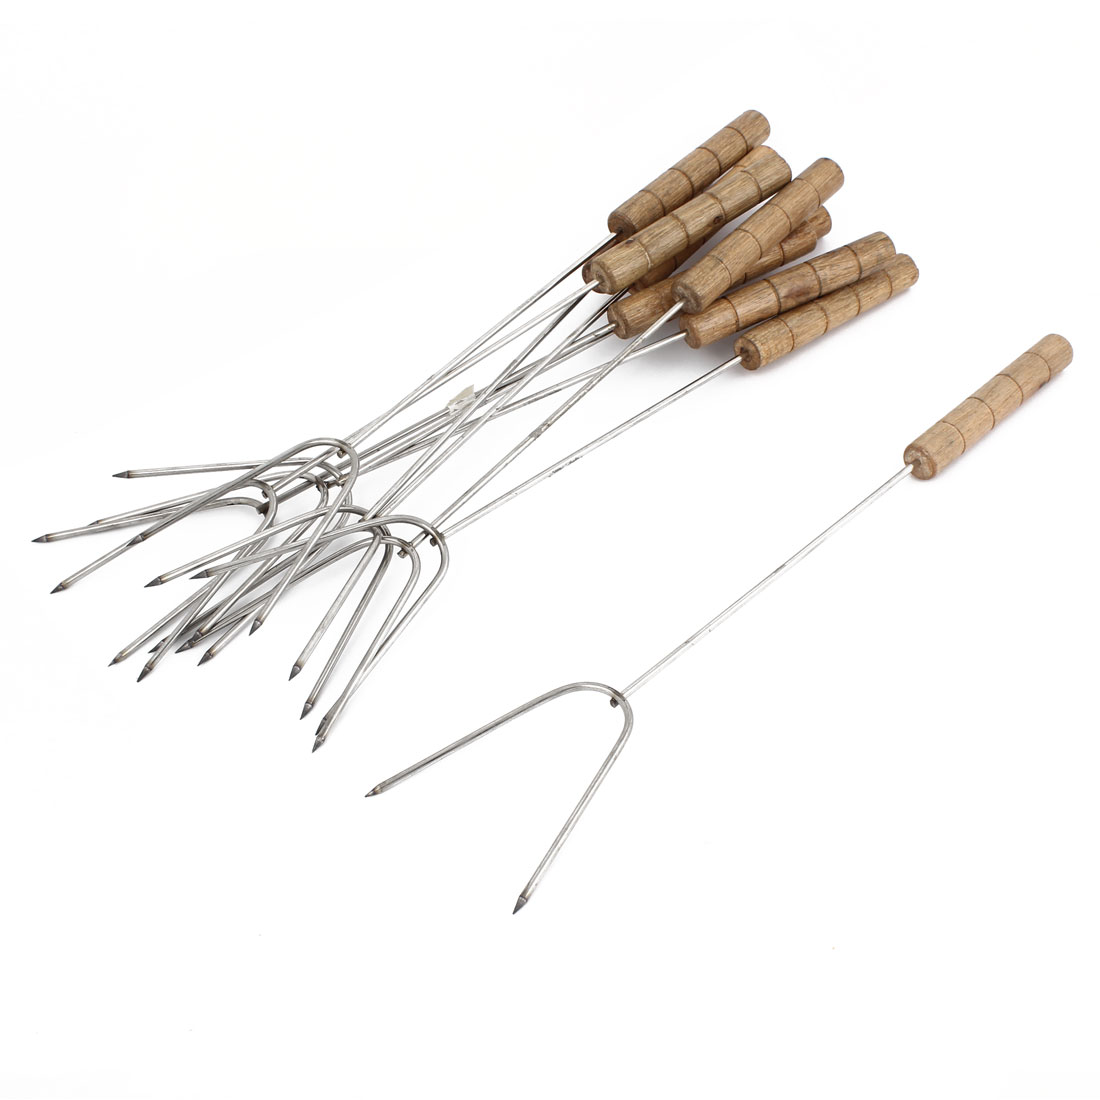 Outdoor Wooden Handle Metal Shaft Barbecue Tool BBQ Forks 10 Pcs